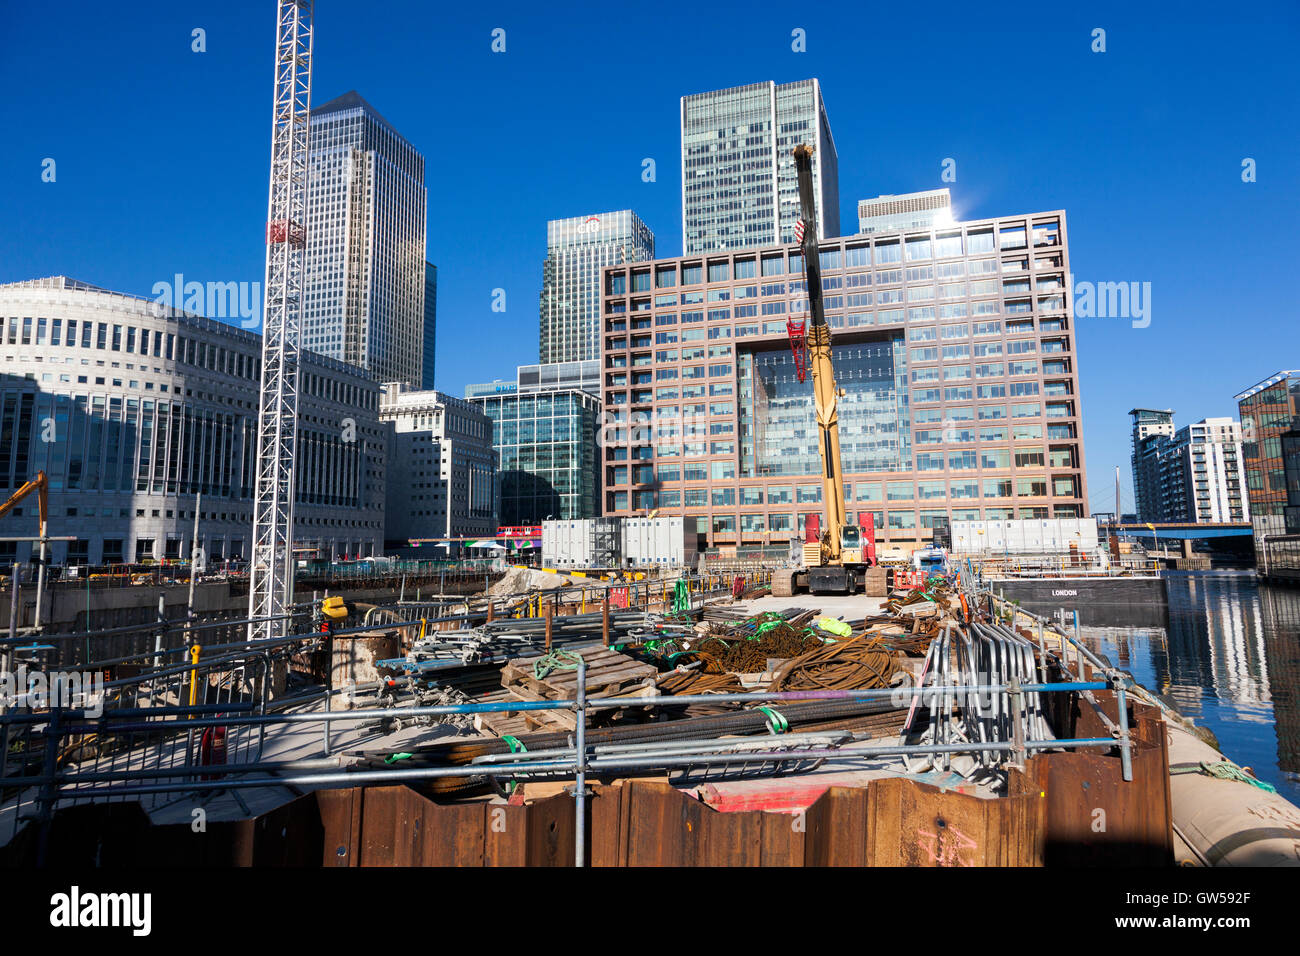 18th July 2016 - One Bank Street Project construction site, Canary Wharf, London - Stock Image